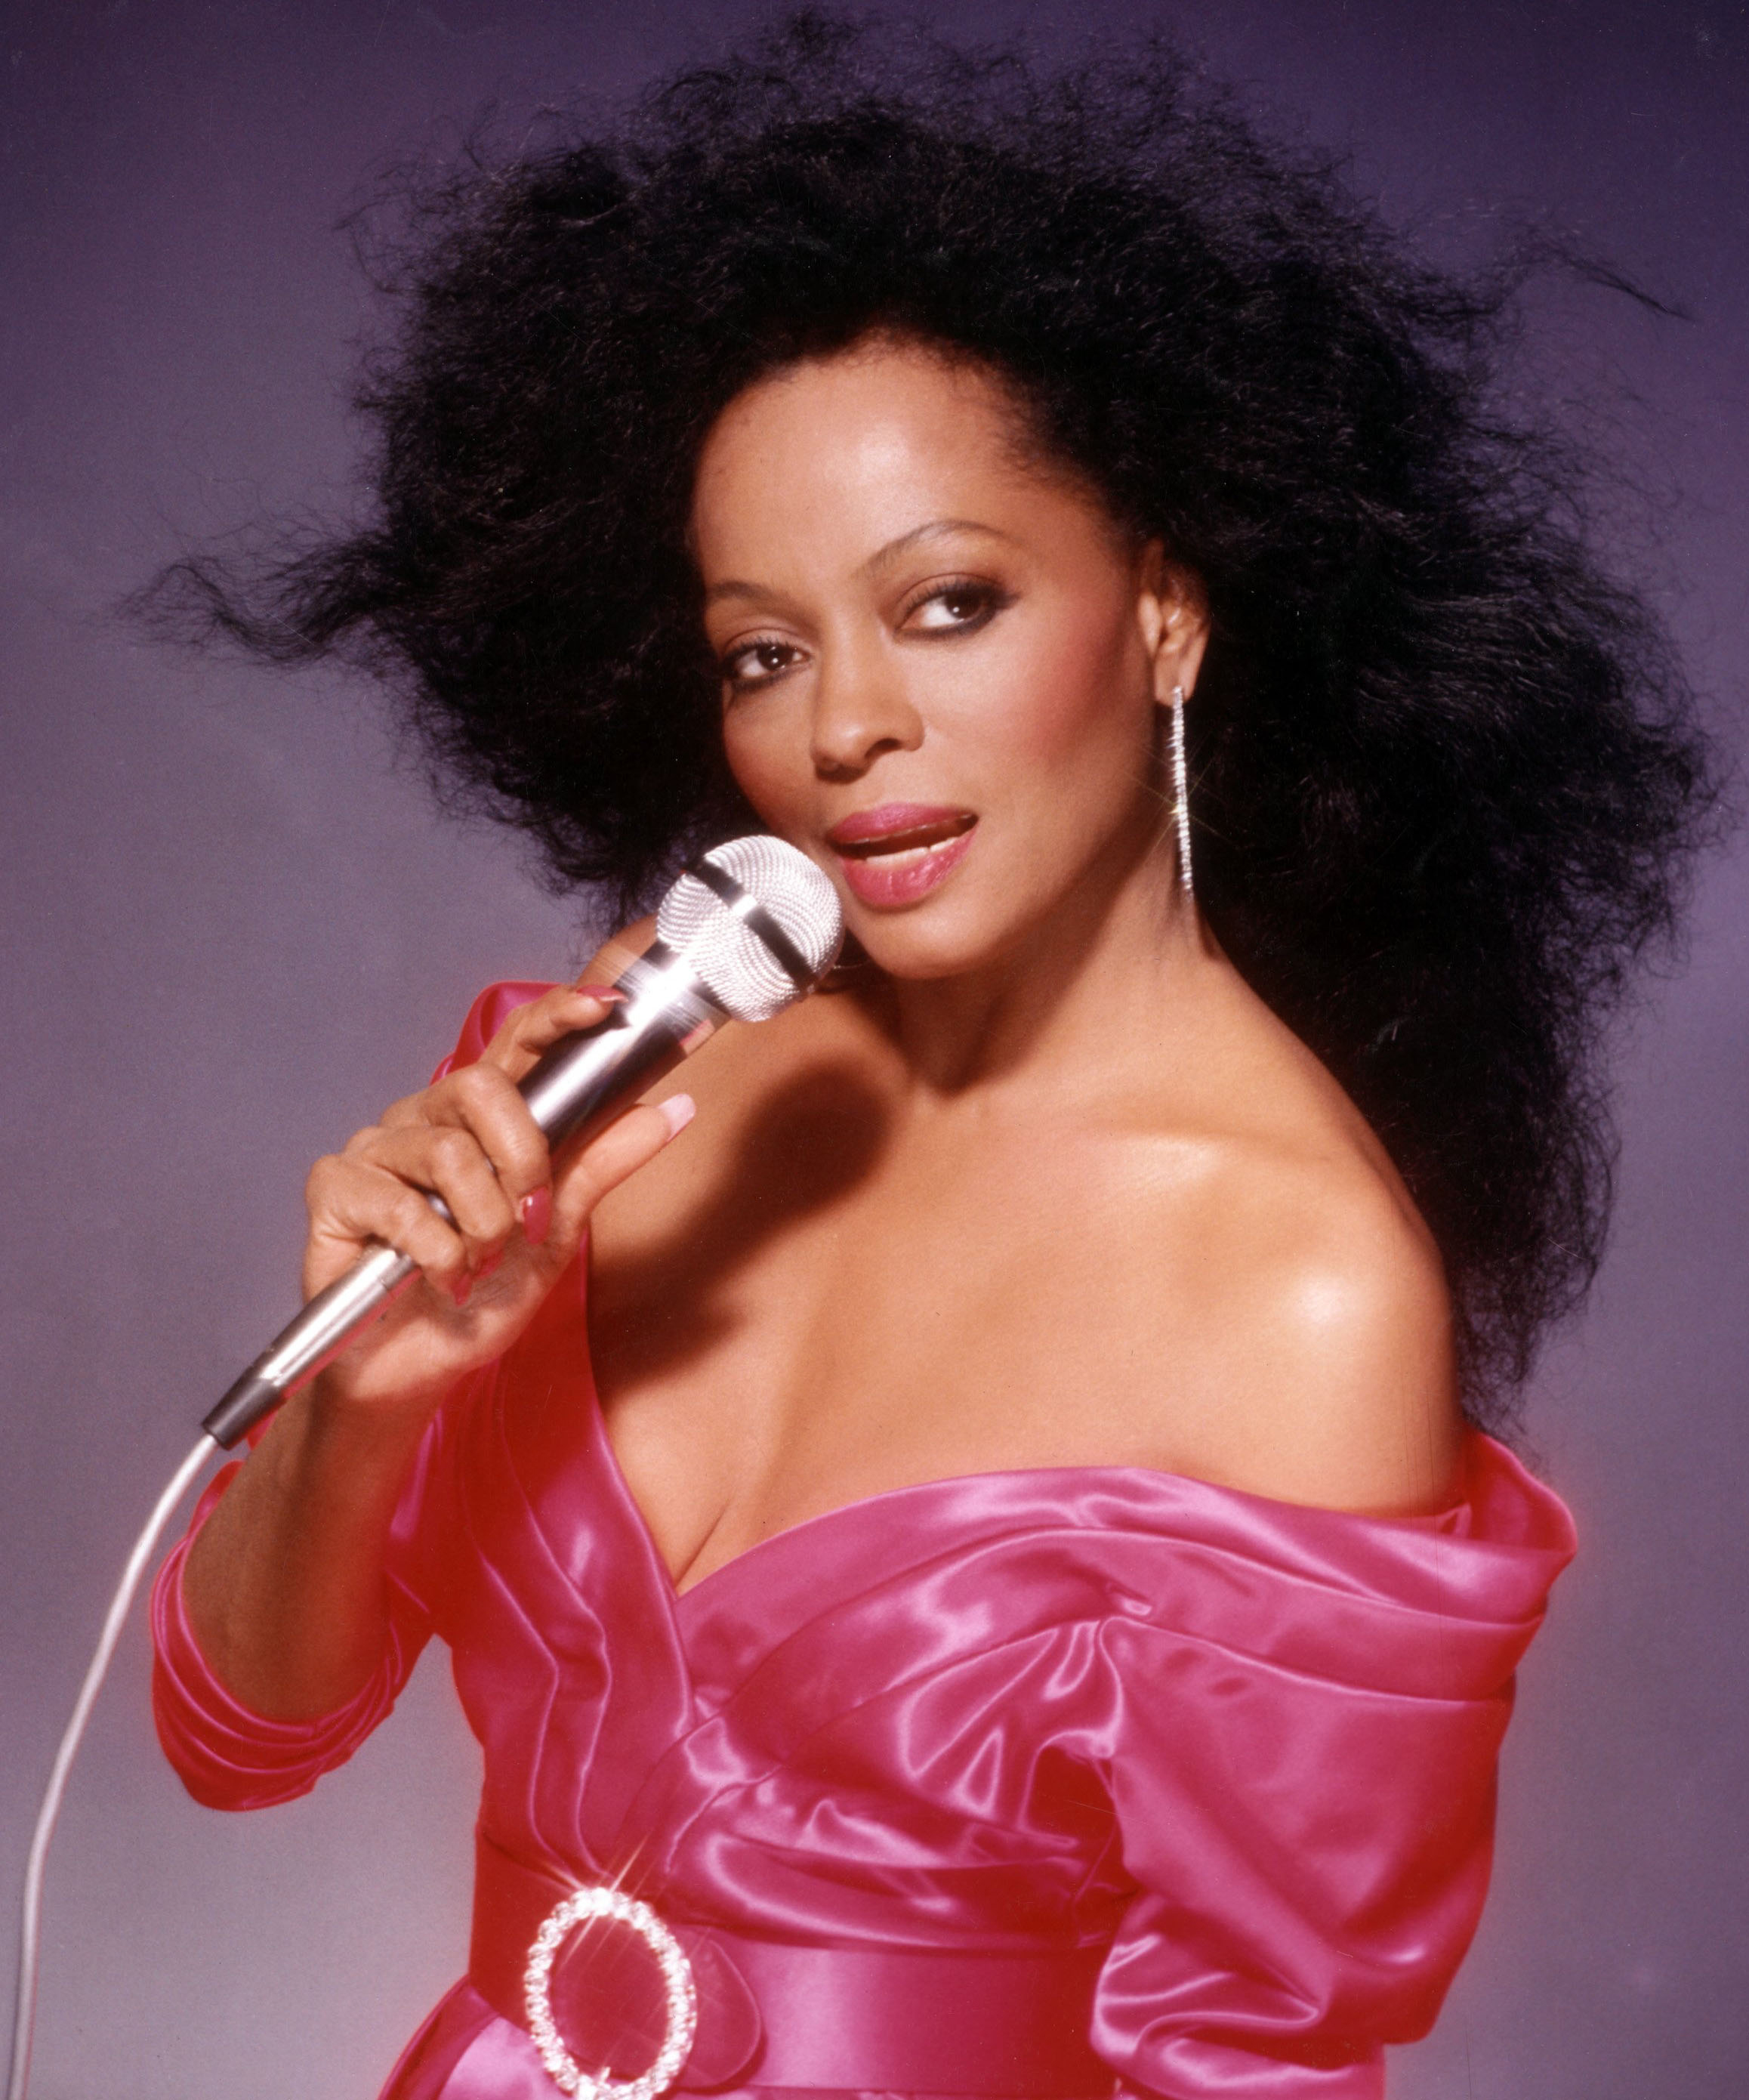 diana ross - photo #22